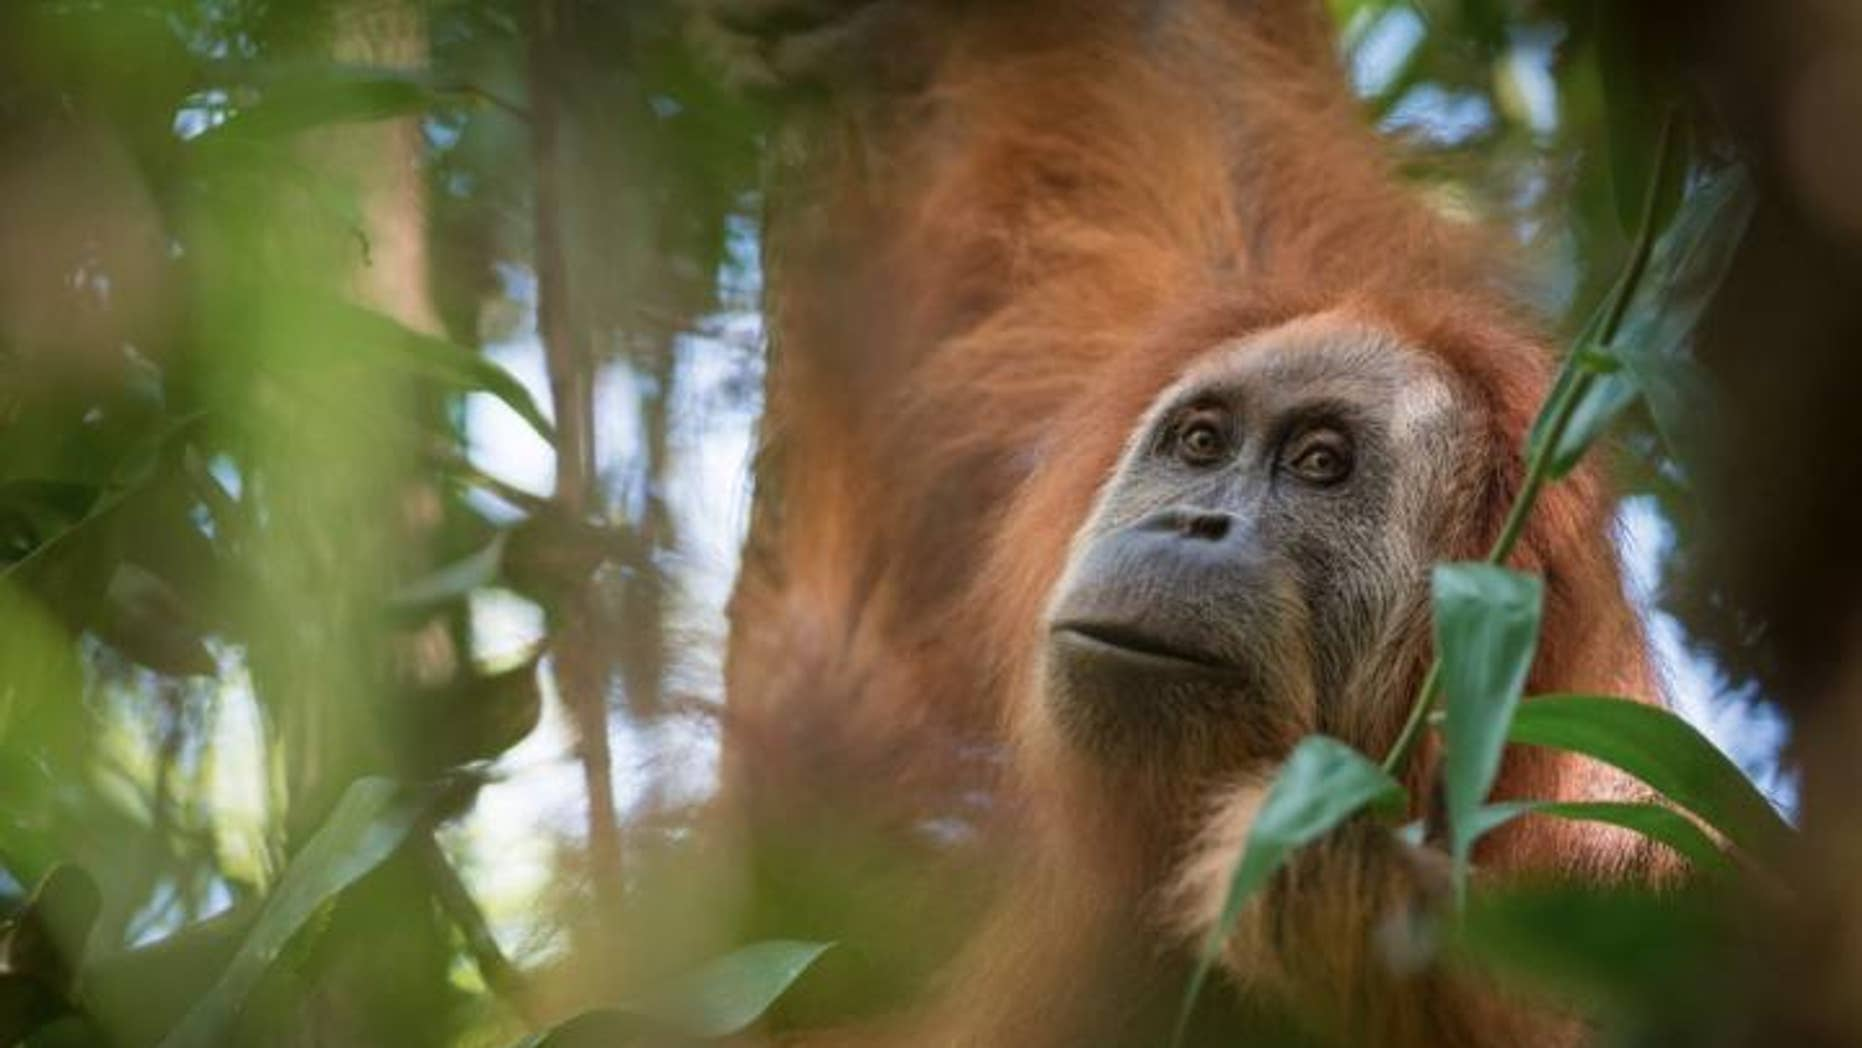 The Pongo tapanuliensis, a new species of orangutan (Andrew Walmsley)